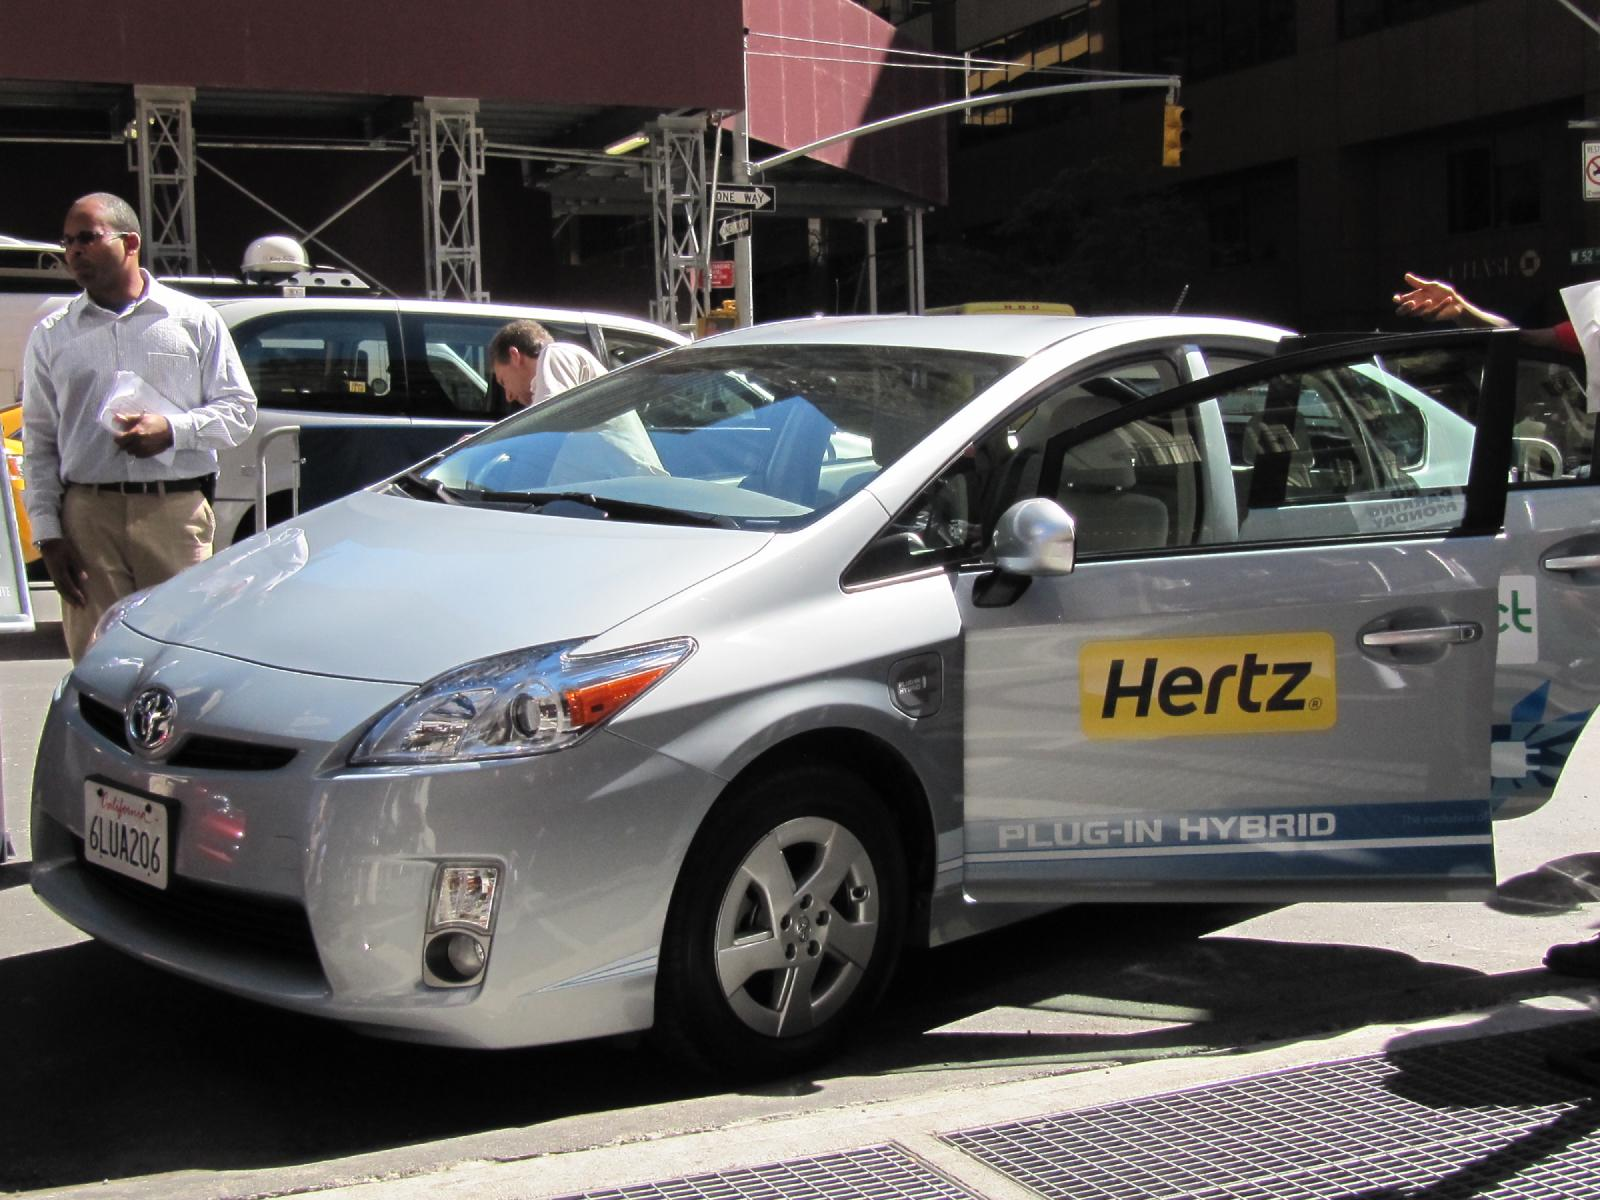 hertz to rent electric cars like nissan leaf in selected areas. Black Bedroom Furniture Sets. Home Design Ideas